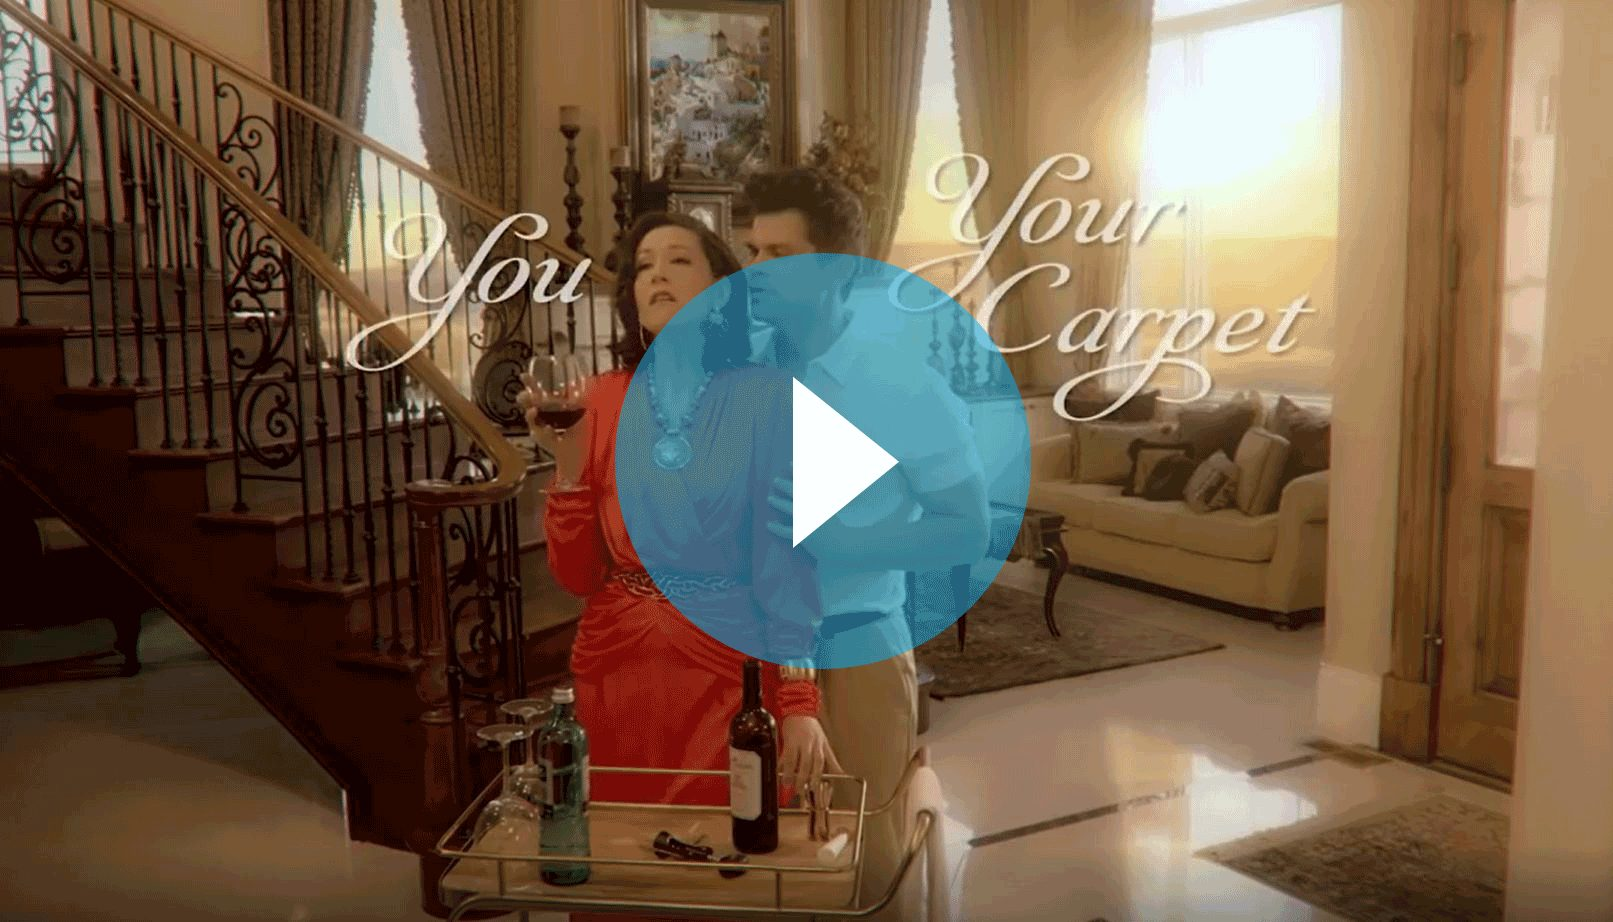 Carpet Cleaning Soap Opera